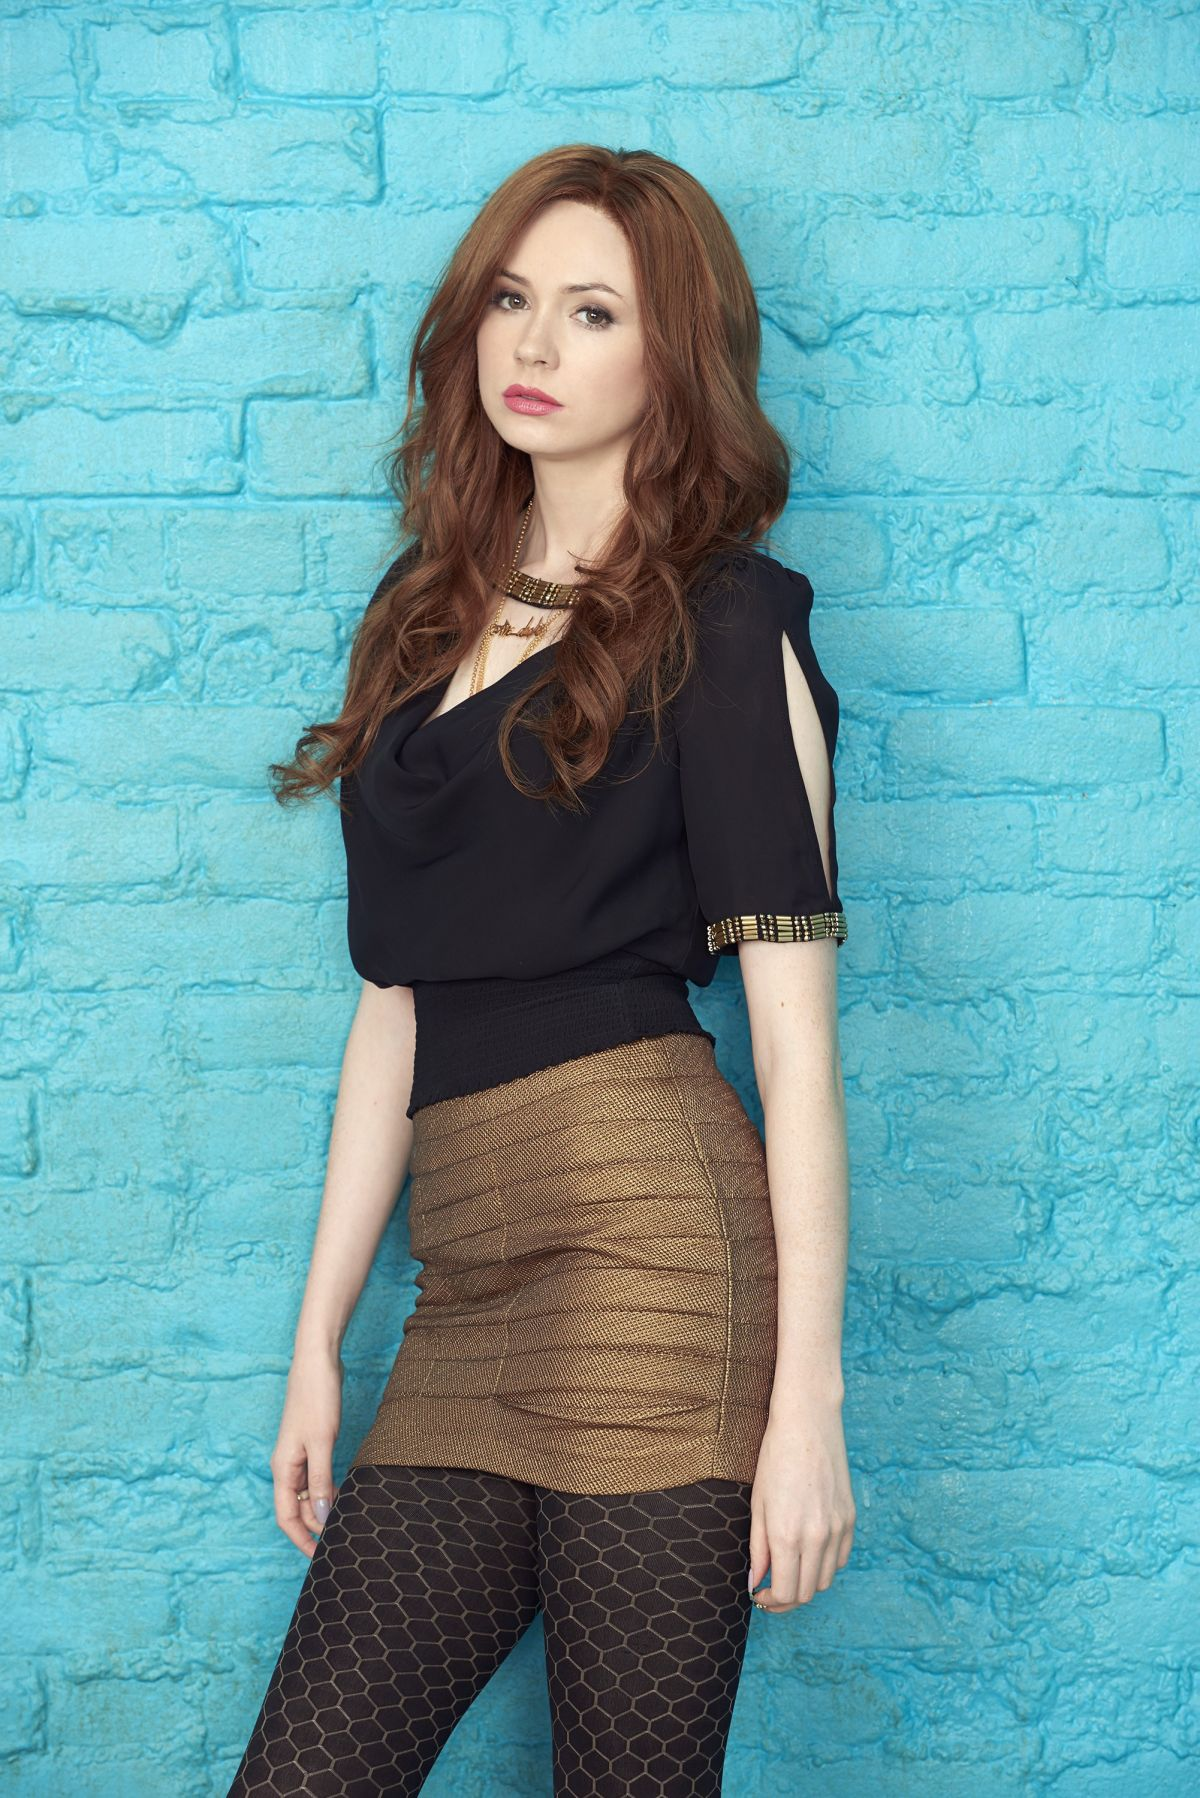 Karen Gillan HQ wallpapers